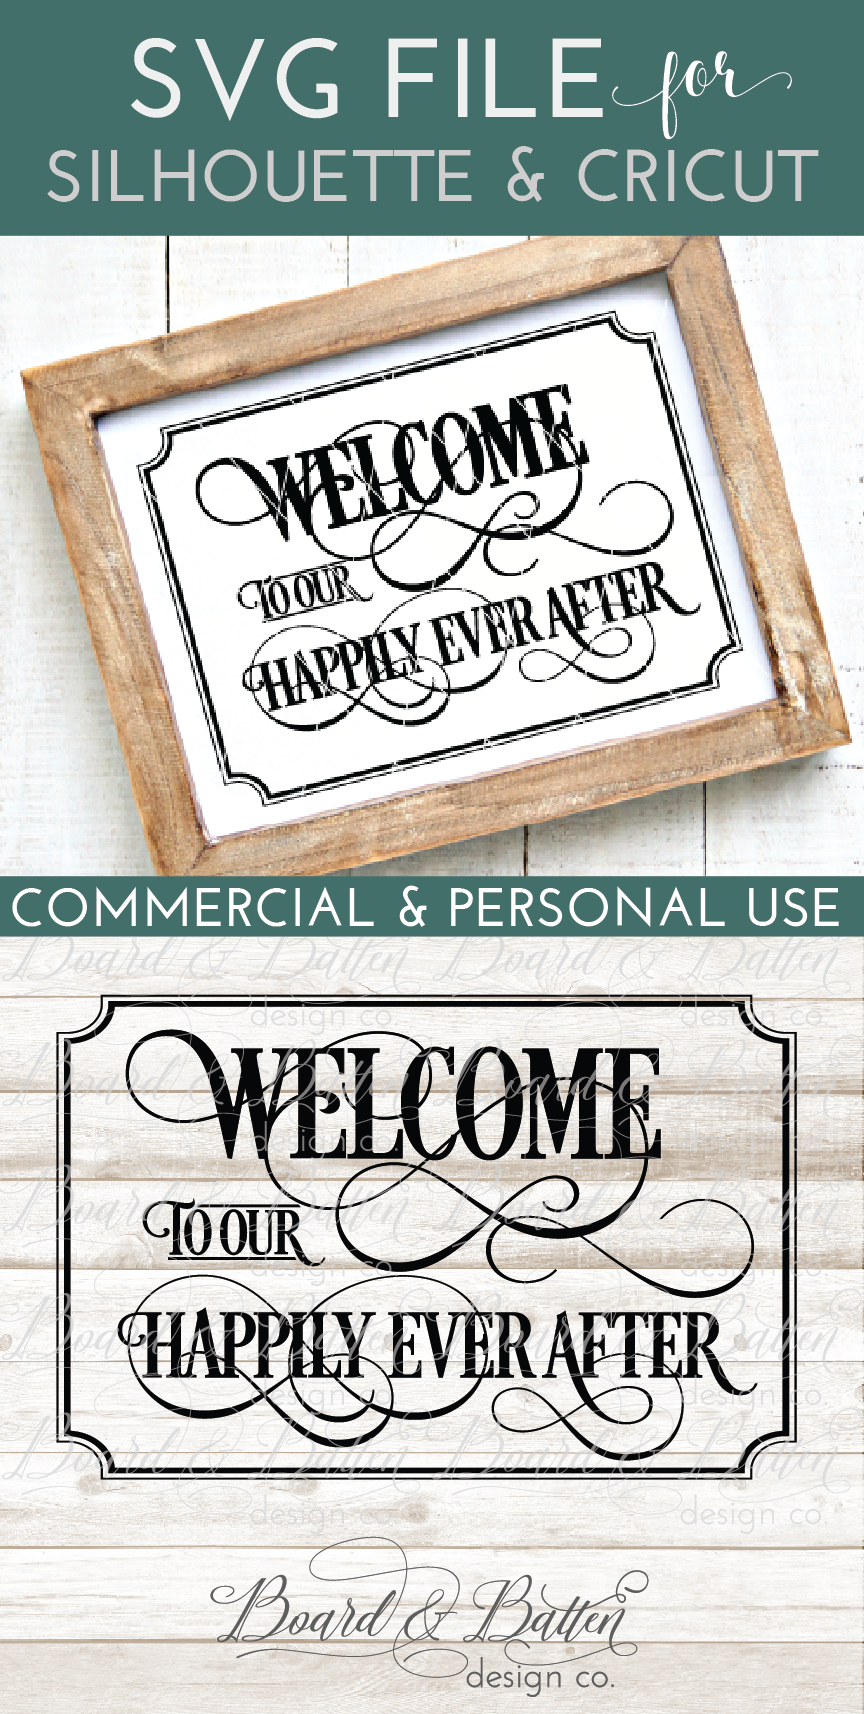 Welcome To Our Happily Ever After Svg File Ws5 Cricut Wedding Silhouette School Blog Cricut